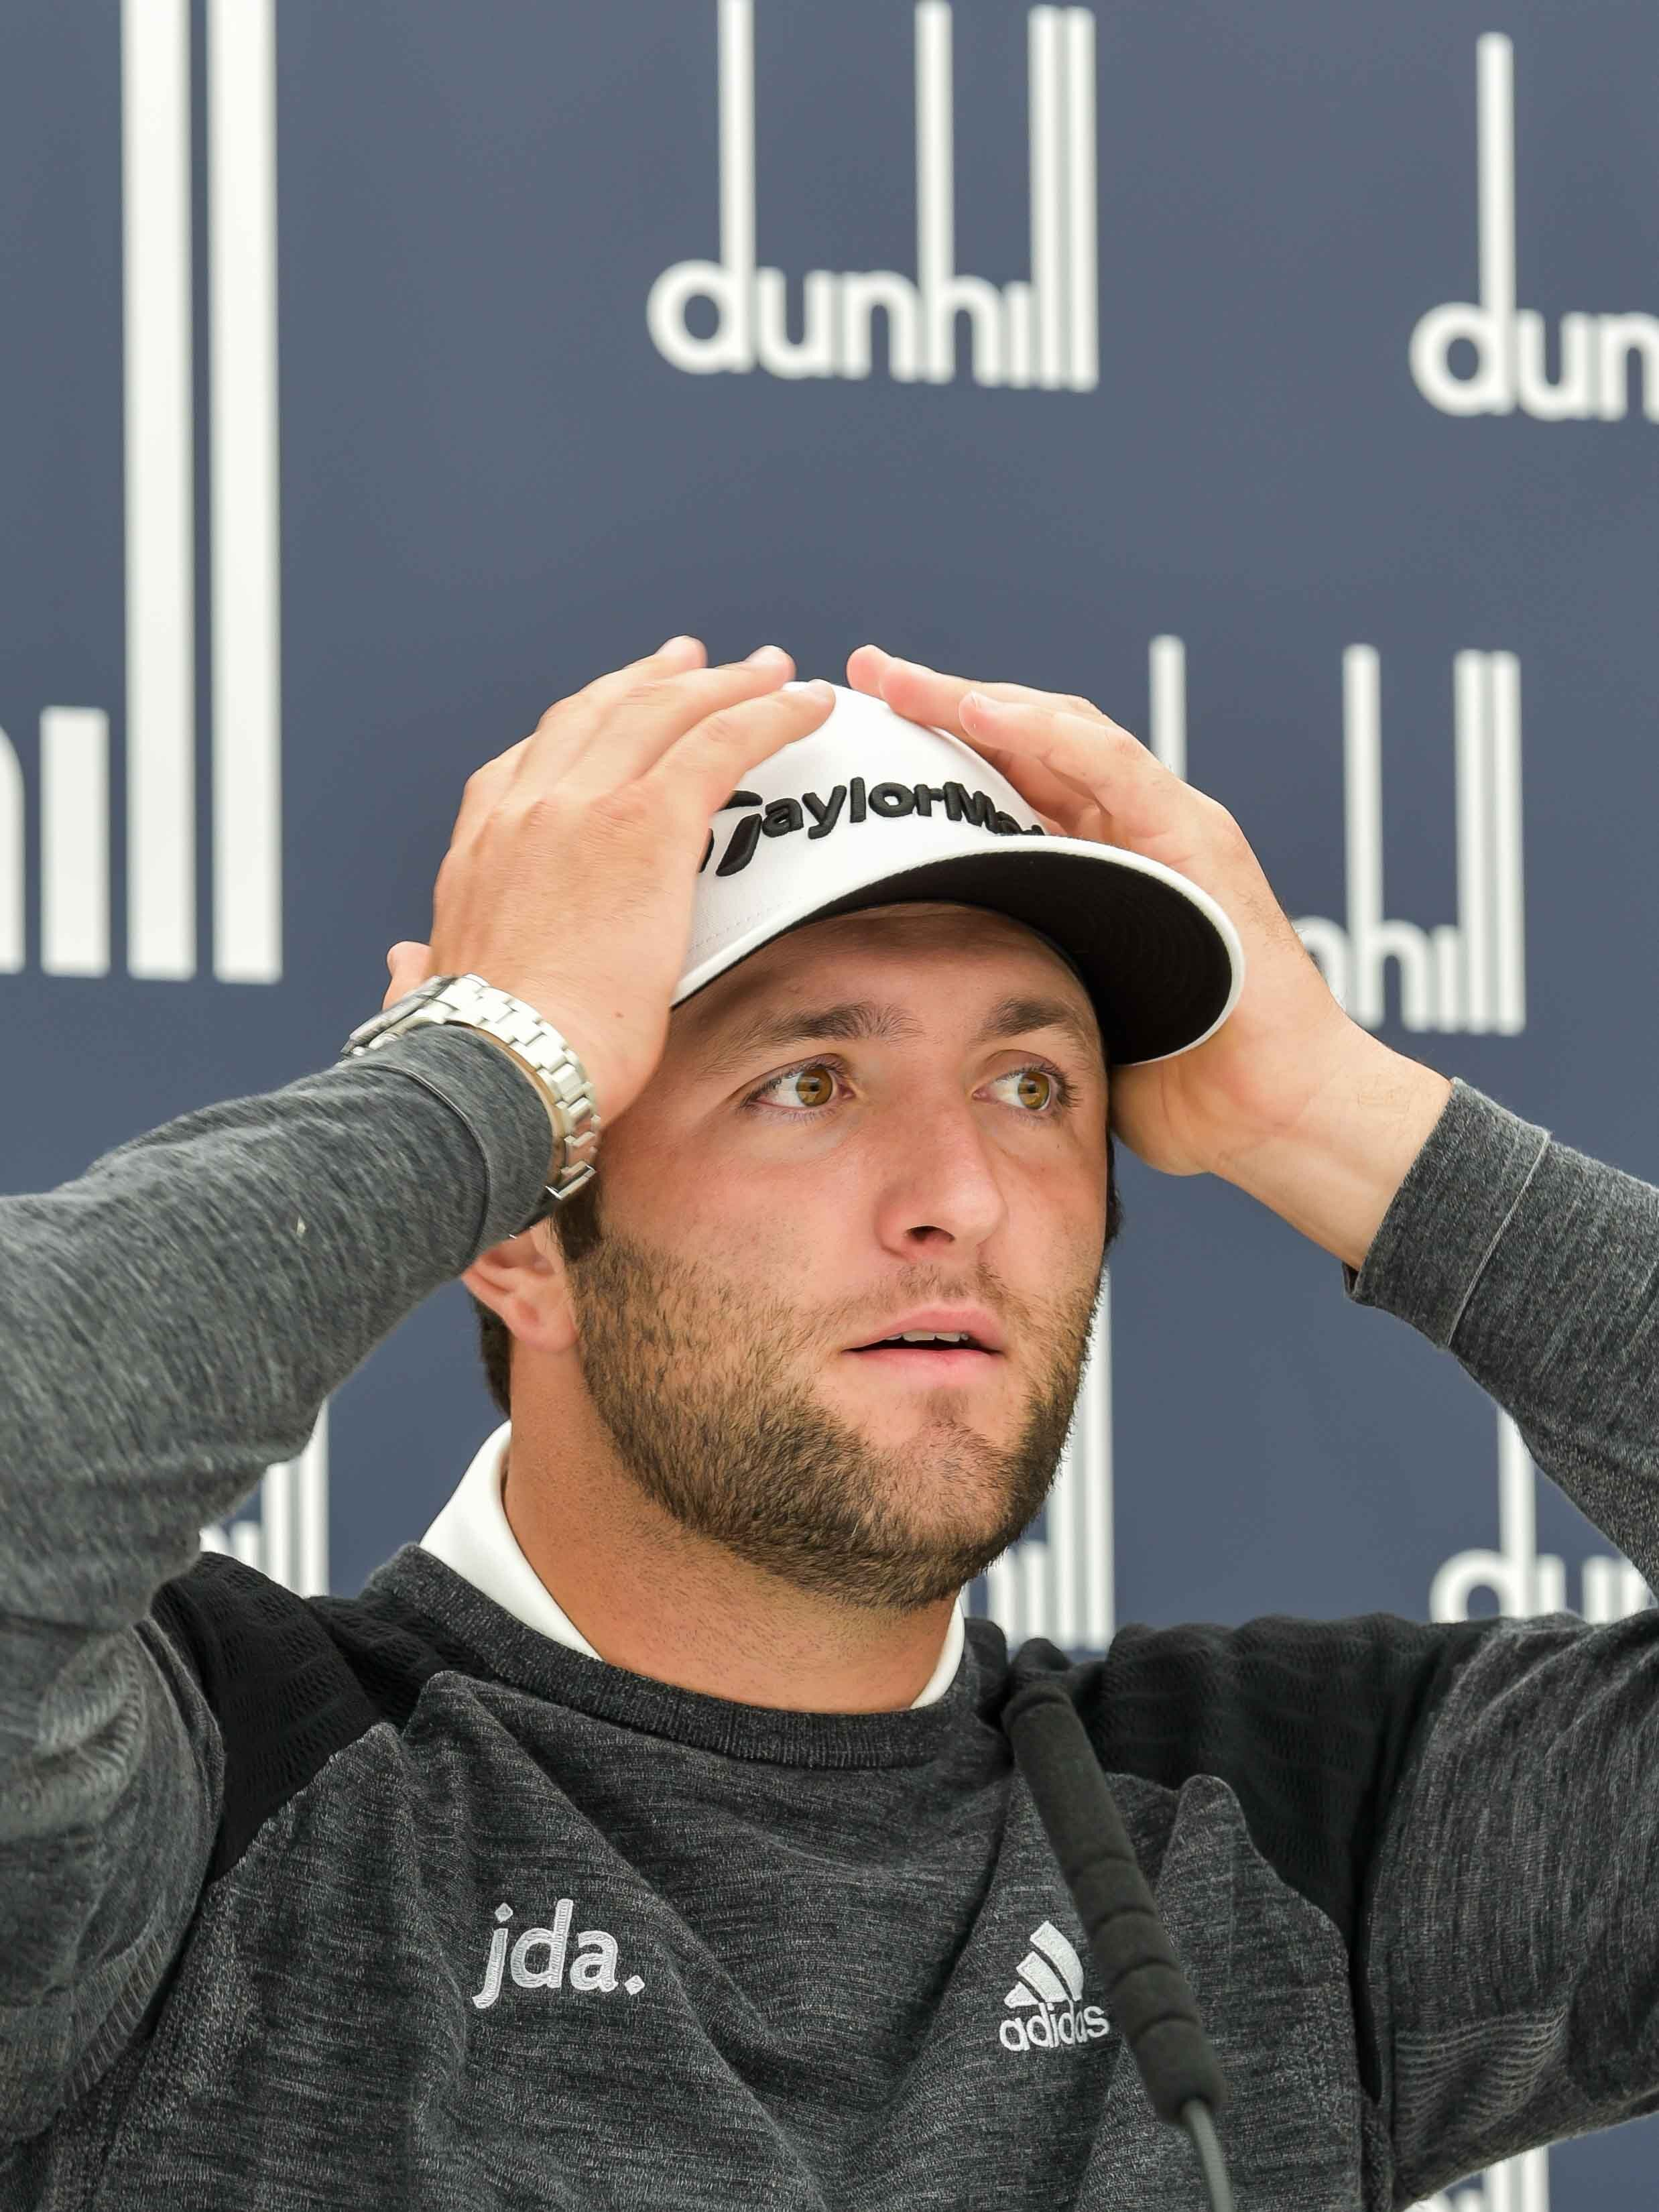 Jon Rahm reacts to the news that Patrick Koenig has been allowed into the media center this week.